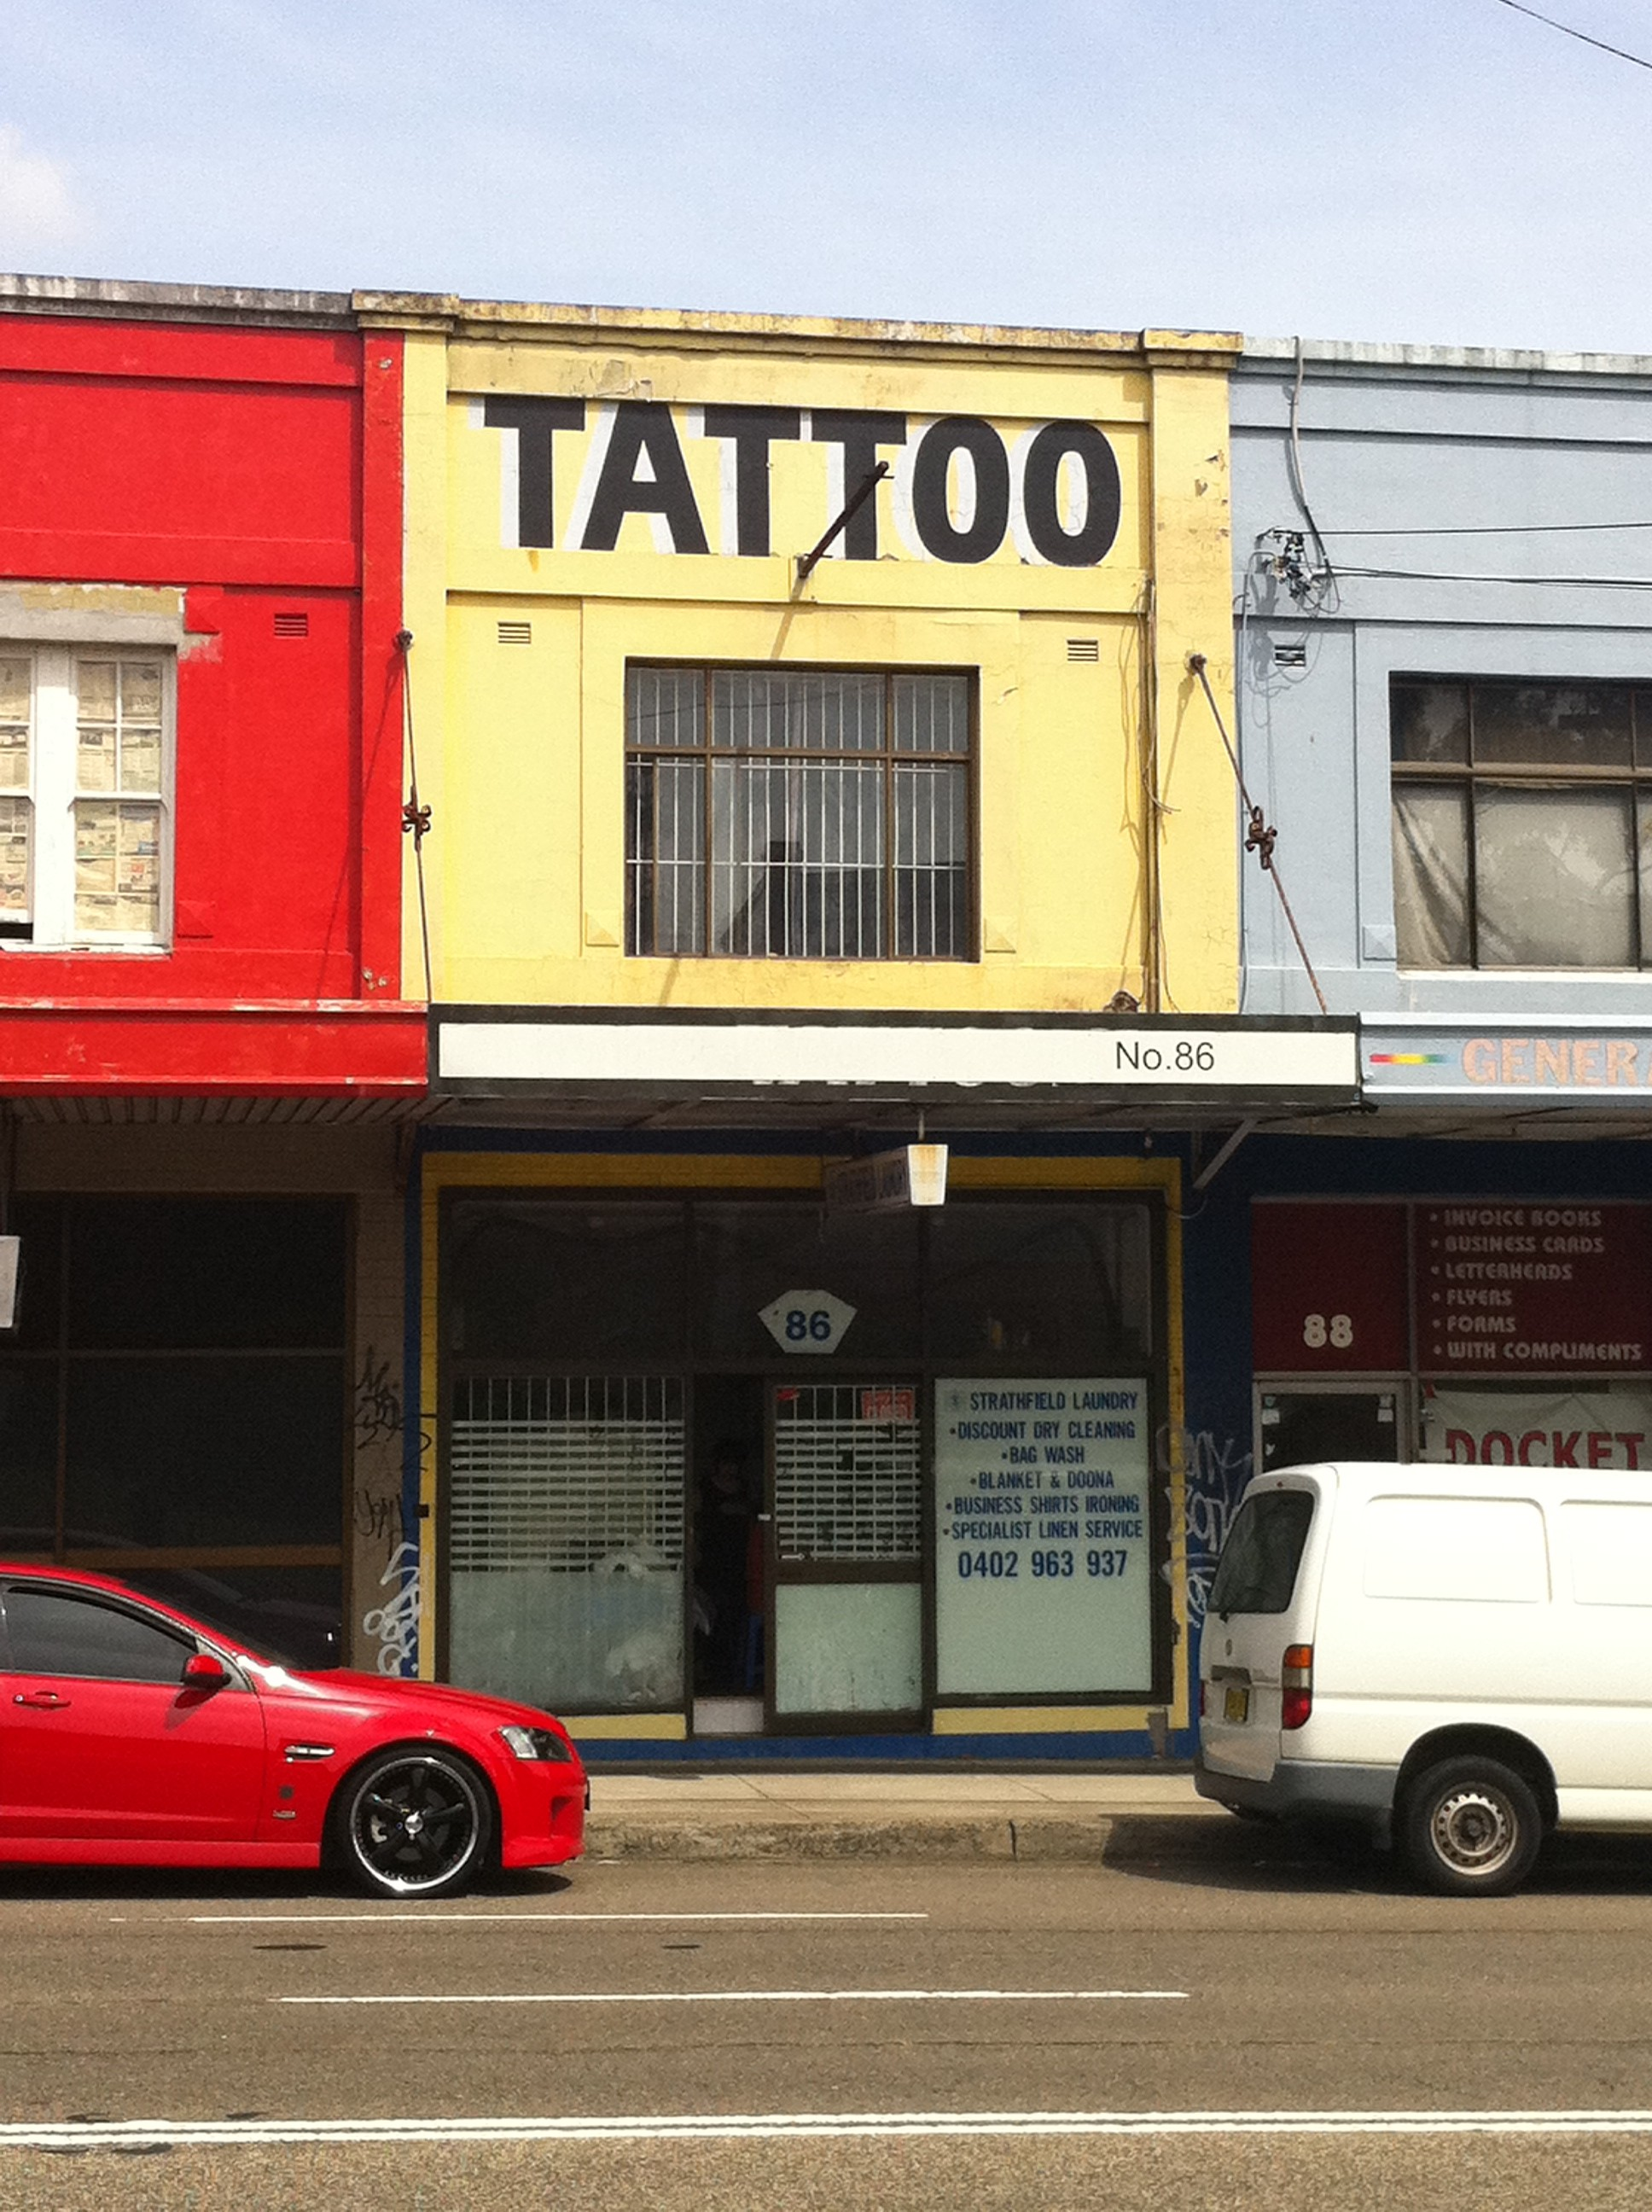 Laundry Parramatta Tattoo Parlour Strathfield Laundry Homebush Nsw Past